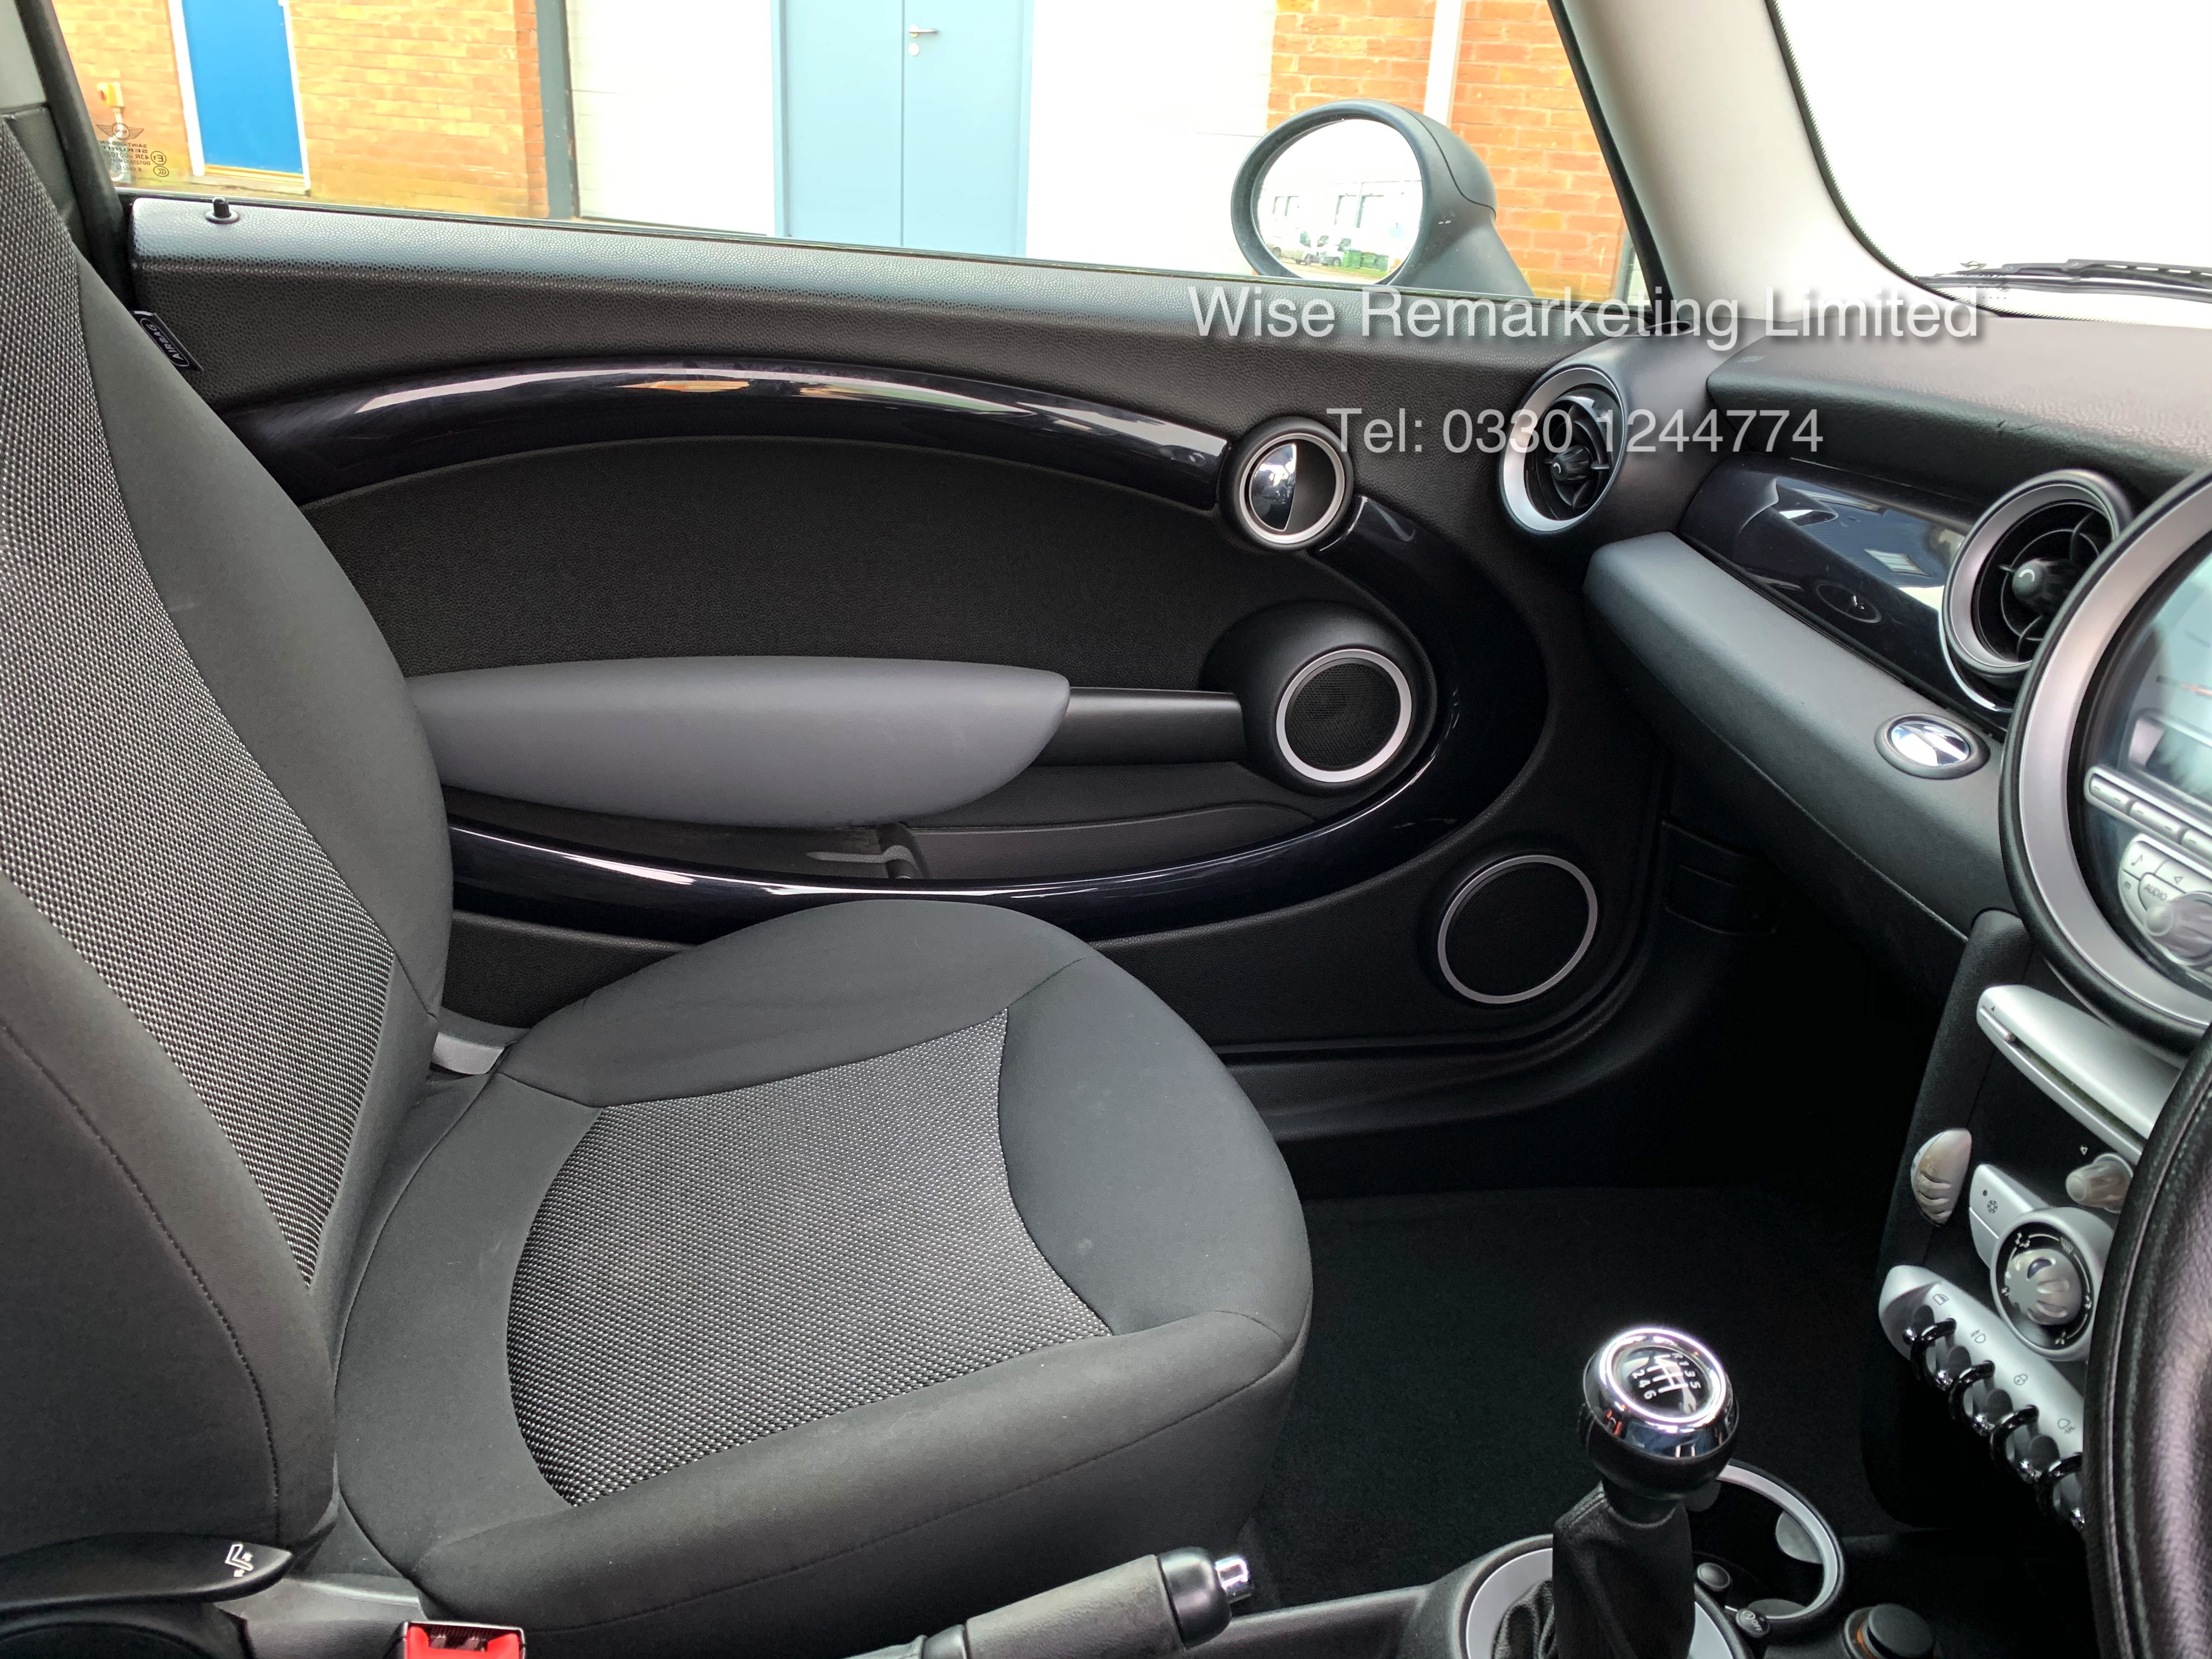 (RESERVE MET) Mini One Graphite 1.4 Petrol - 2010 Model - Service History - 6 Speed - Air Con - - Image 9 of 19